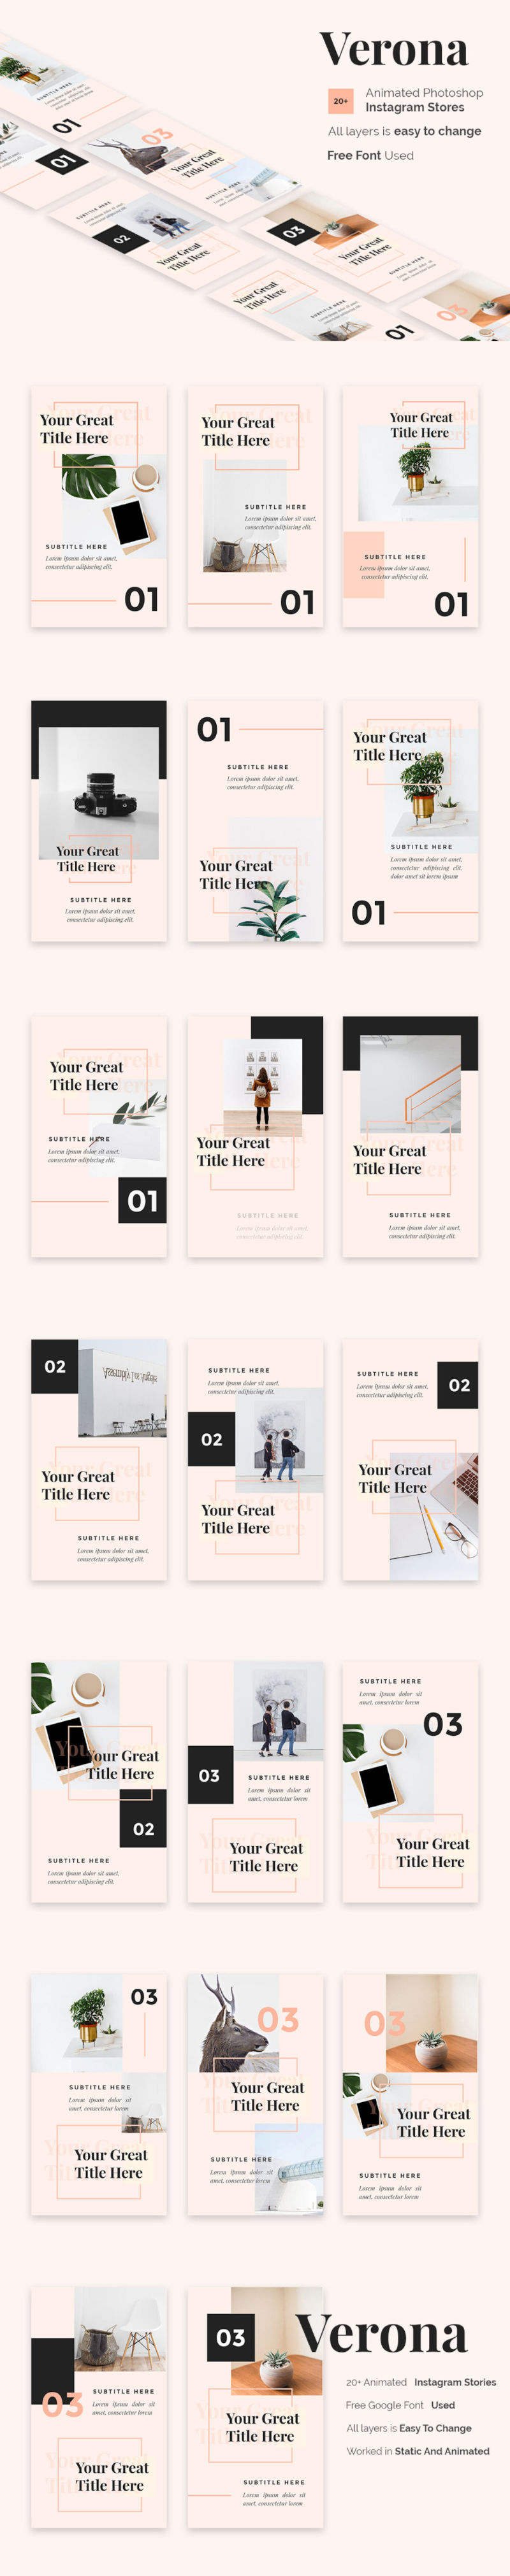 Verona Free Animated Instagram Story Templates